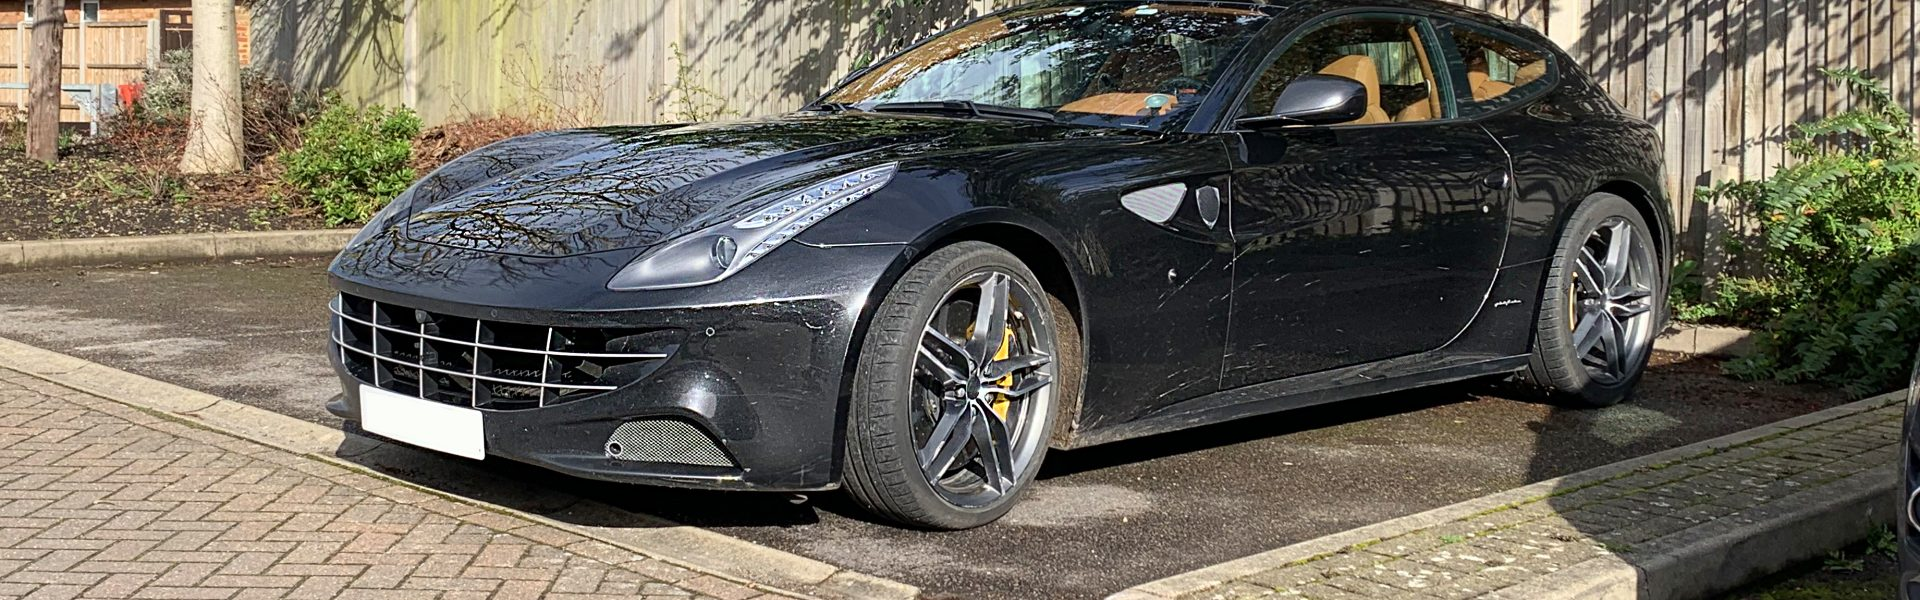 Why this Ferrari FF with Novitec sports exhaust is going to blow your mind?